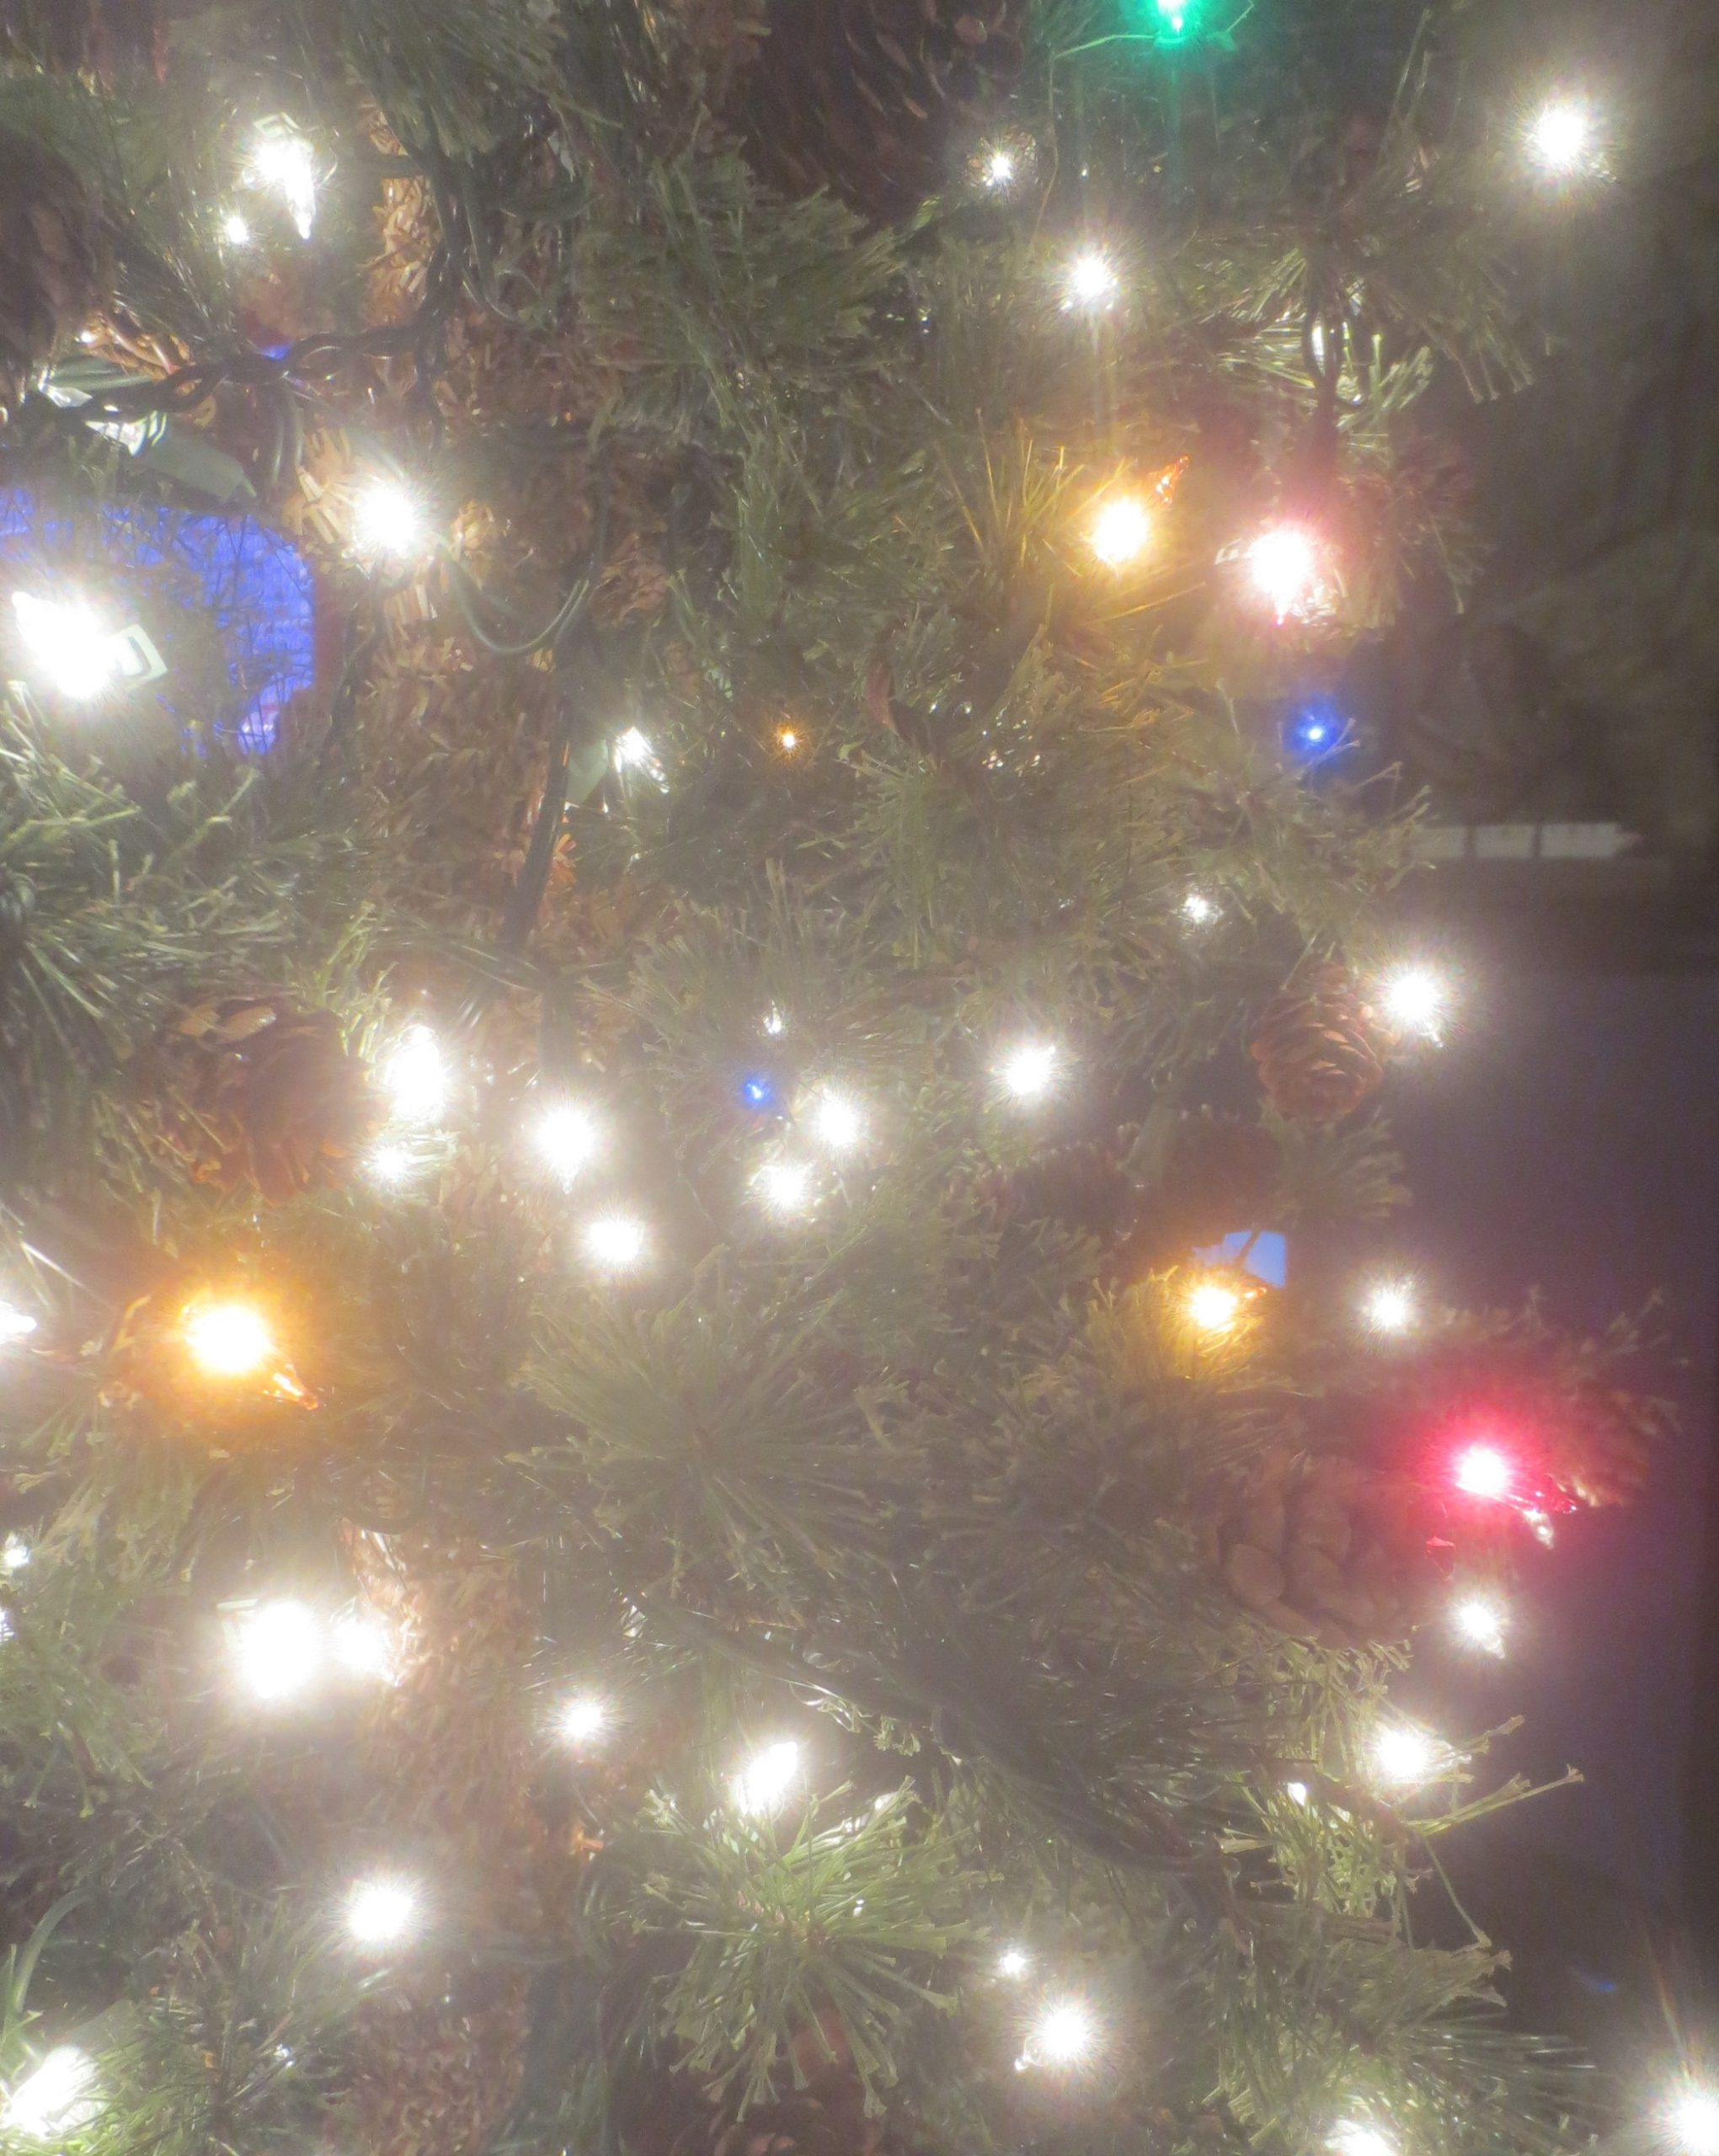 close up of a Christmas tree with mostly white lights